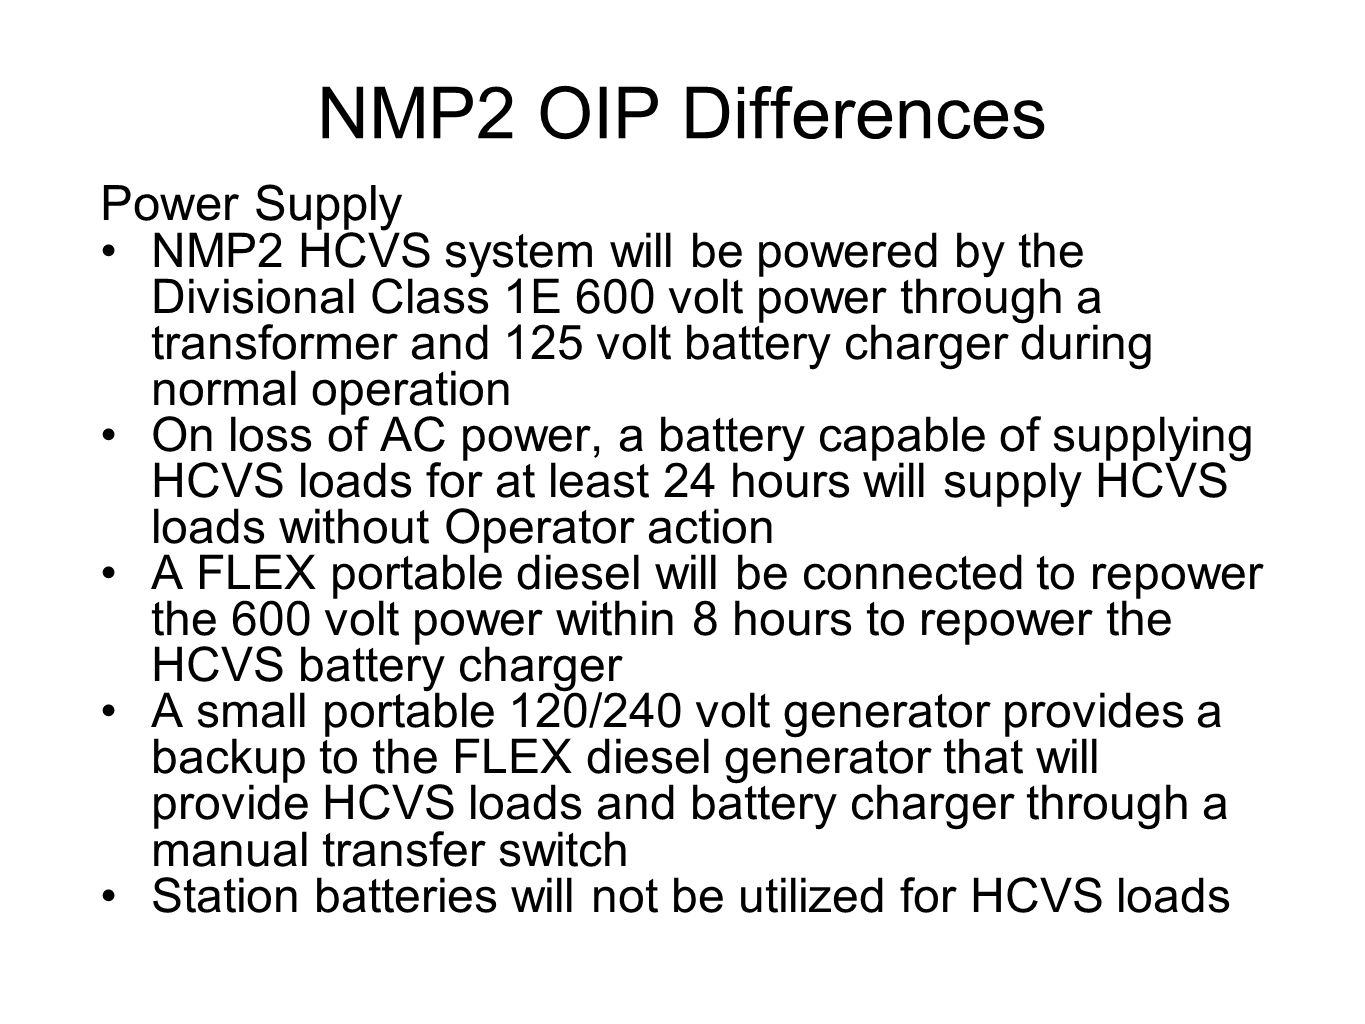 NMP2 OIP Differences Power Supply